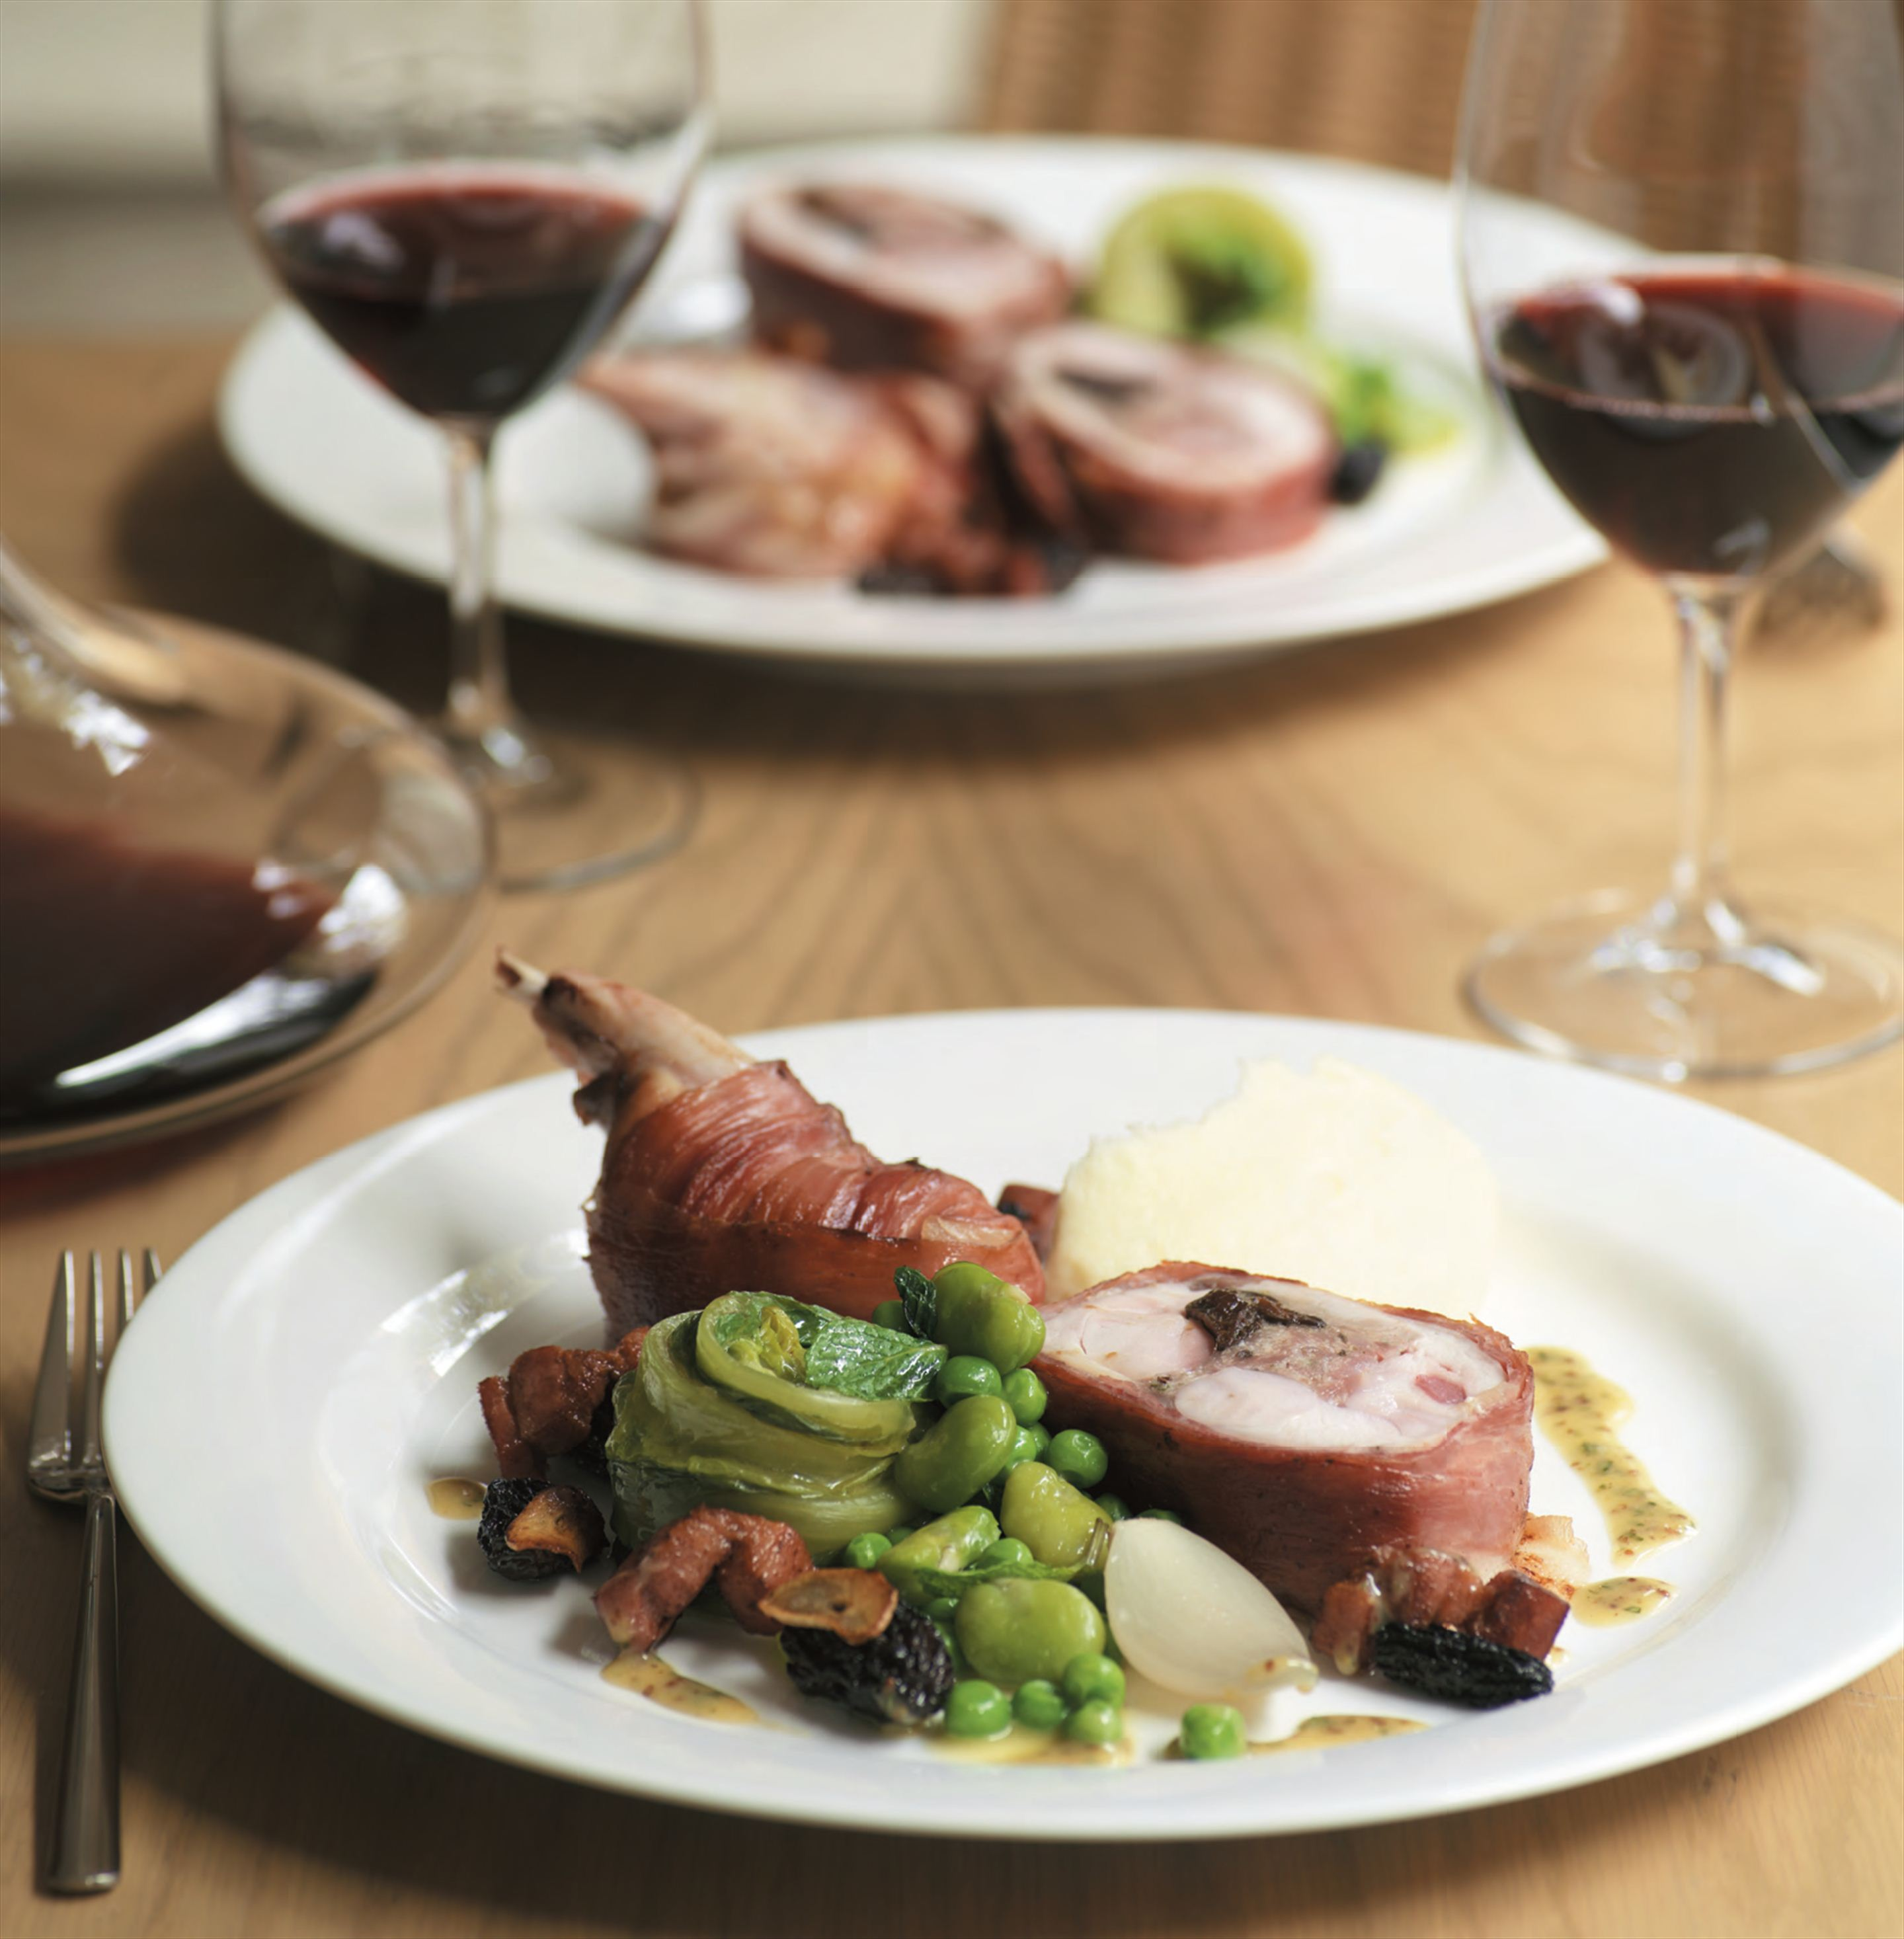 Stuffed rabbit with armagnac-soaked prunes, braised lettuce, peas and morels